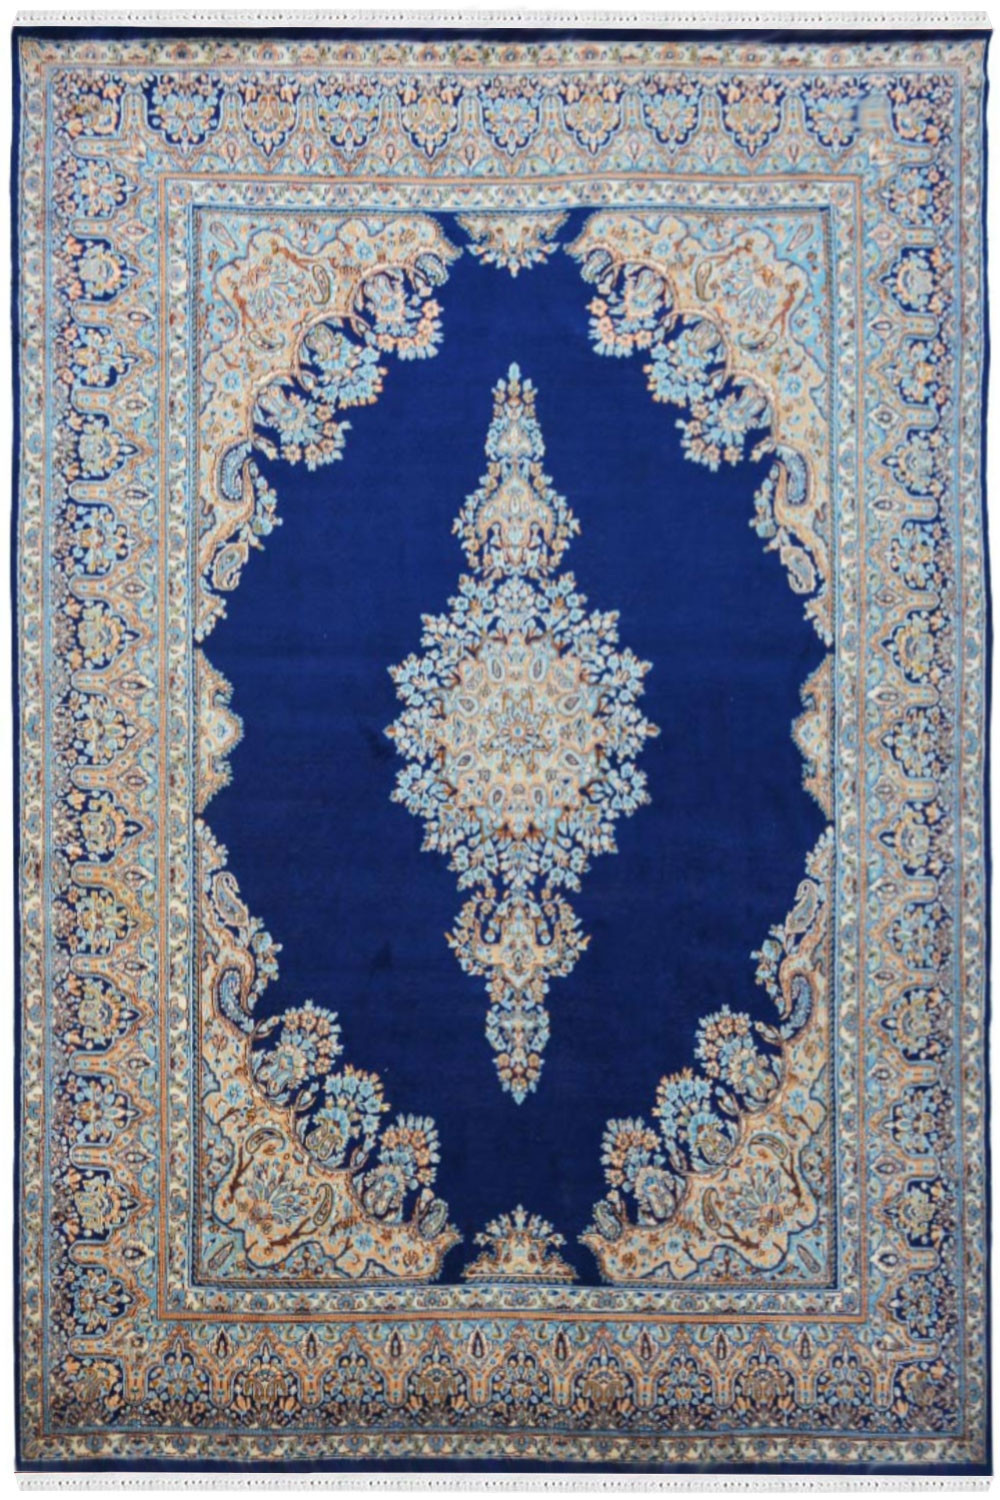 Buy This Royal Neel Rani Persian Woolen Rug From Rugs And